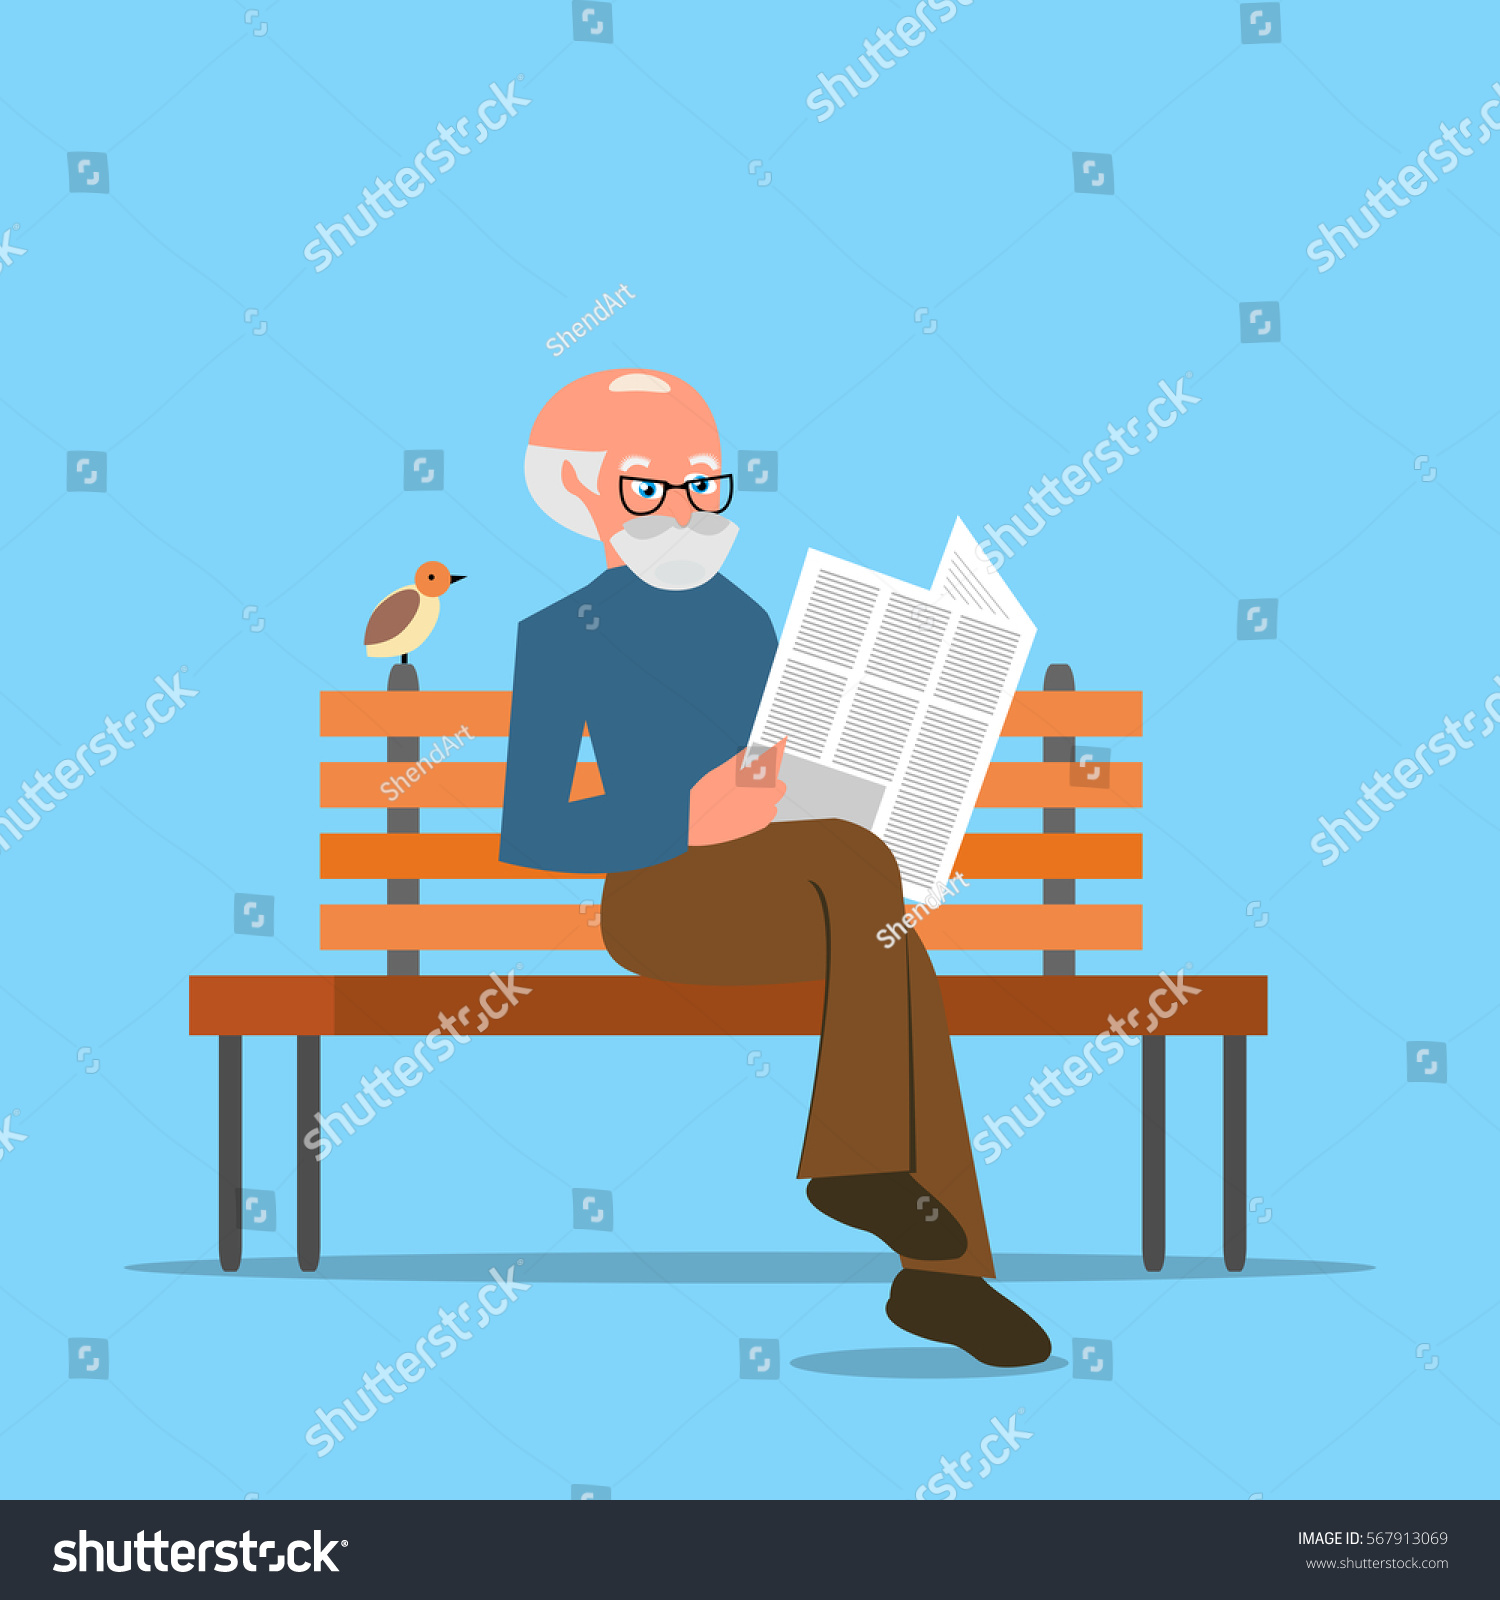 grandfather sitting on bench reading newspaper stock vector (royalty